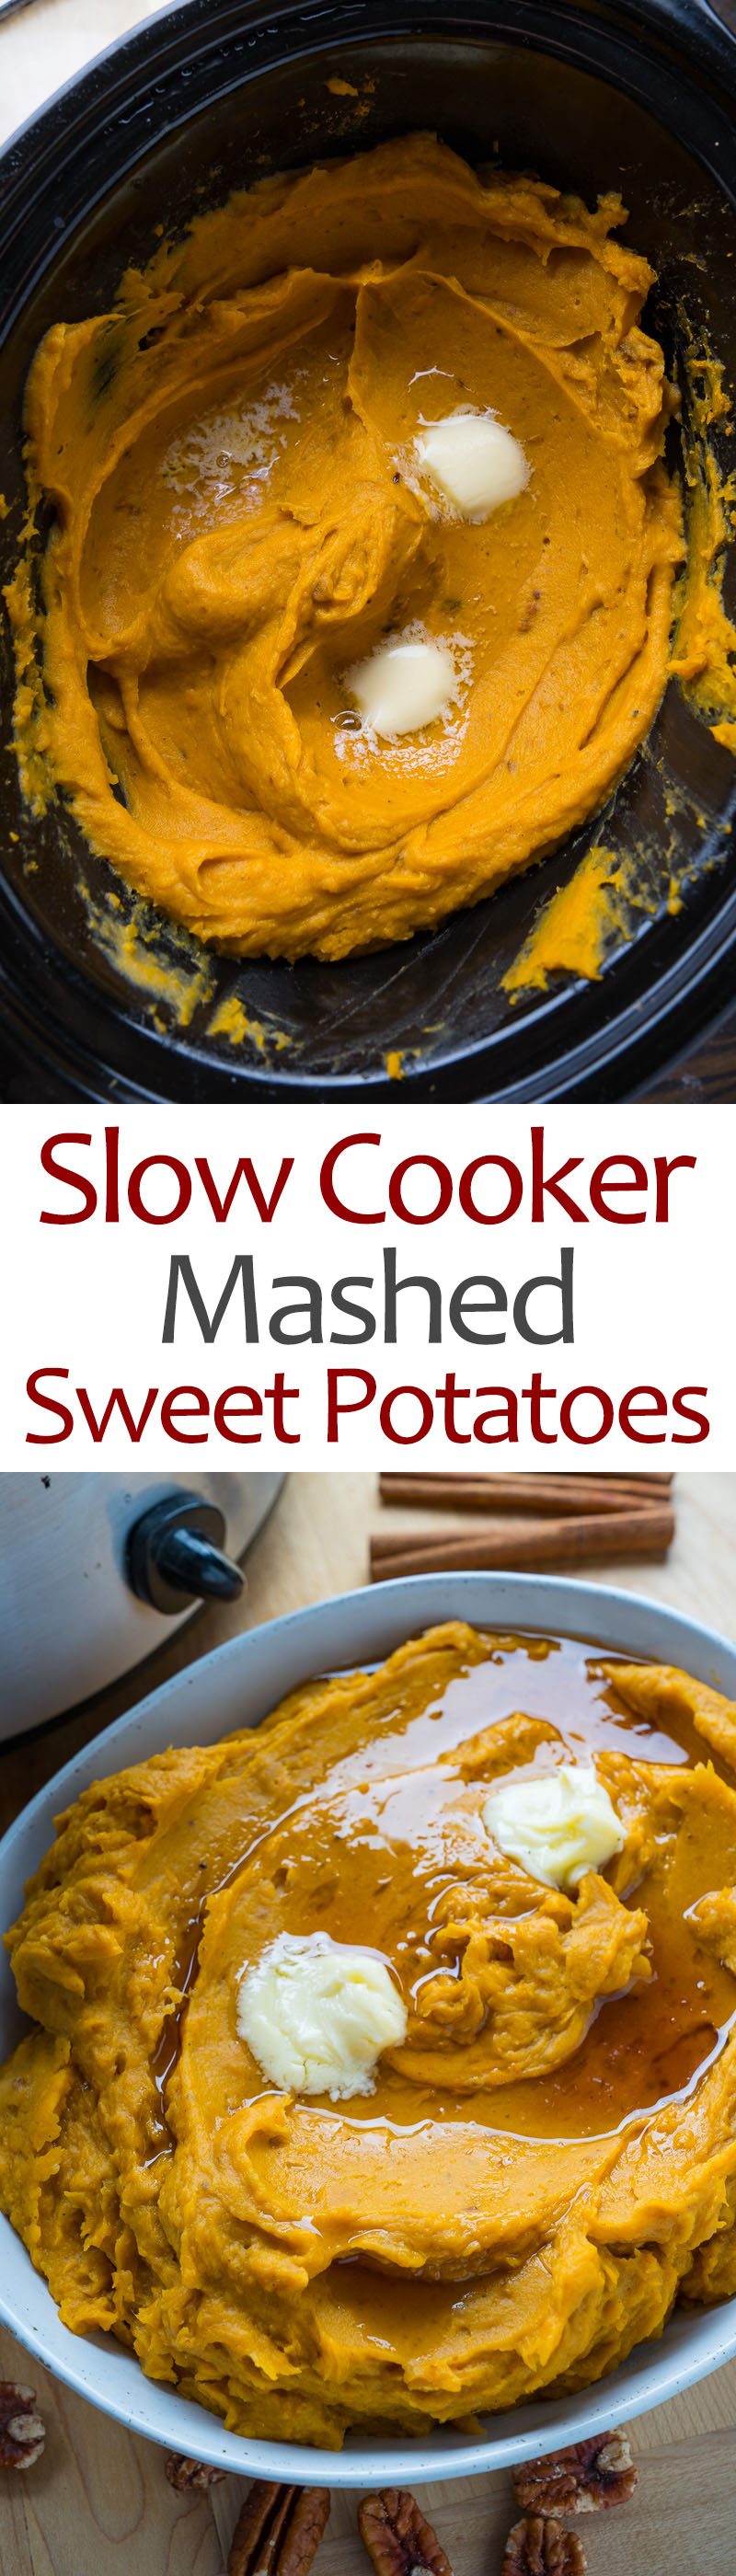 Slow Cooker Mashed Sweet Potatoes